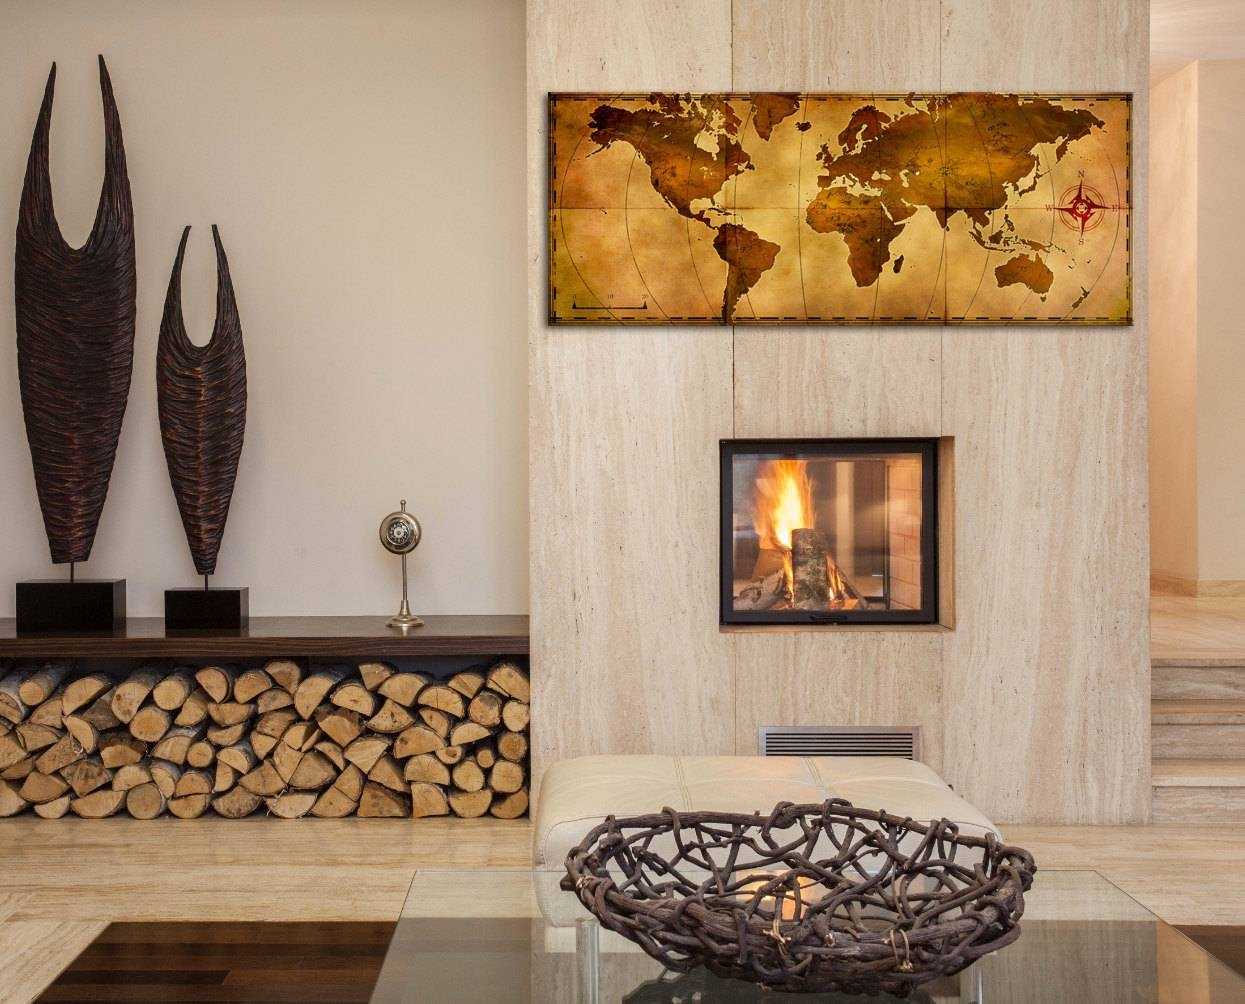 World Map Wall Art 'old World Map' Aged Antique Style Inside 2018 Treasure Map Wall Art (View 5 of 20)